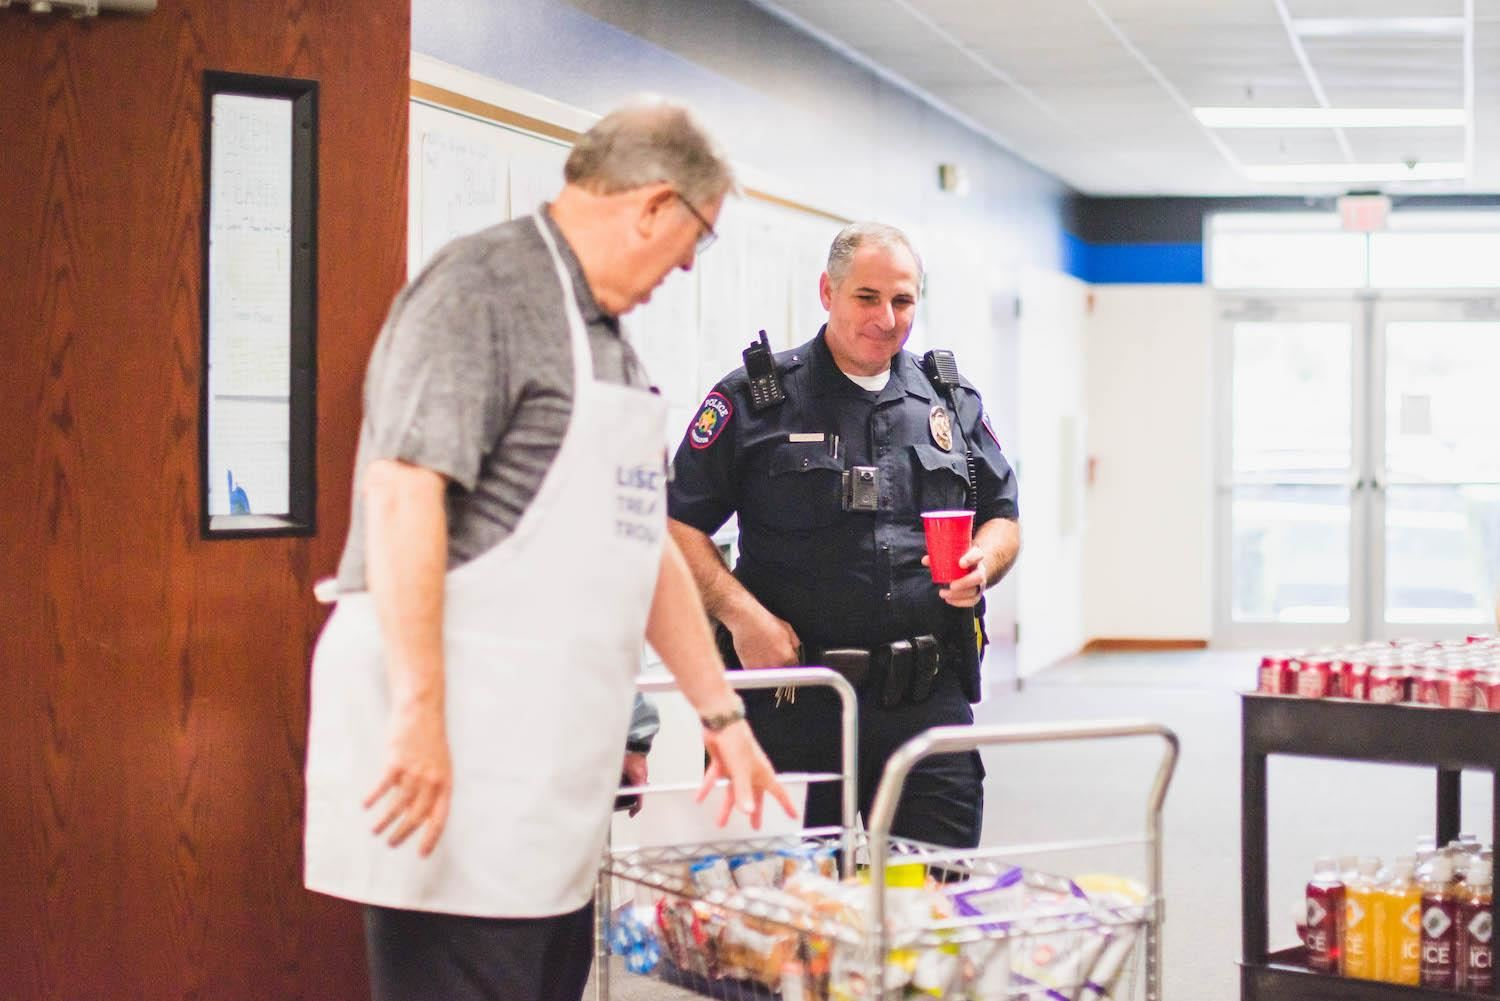 officer gets a snack from the treat trolley